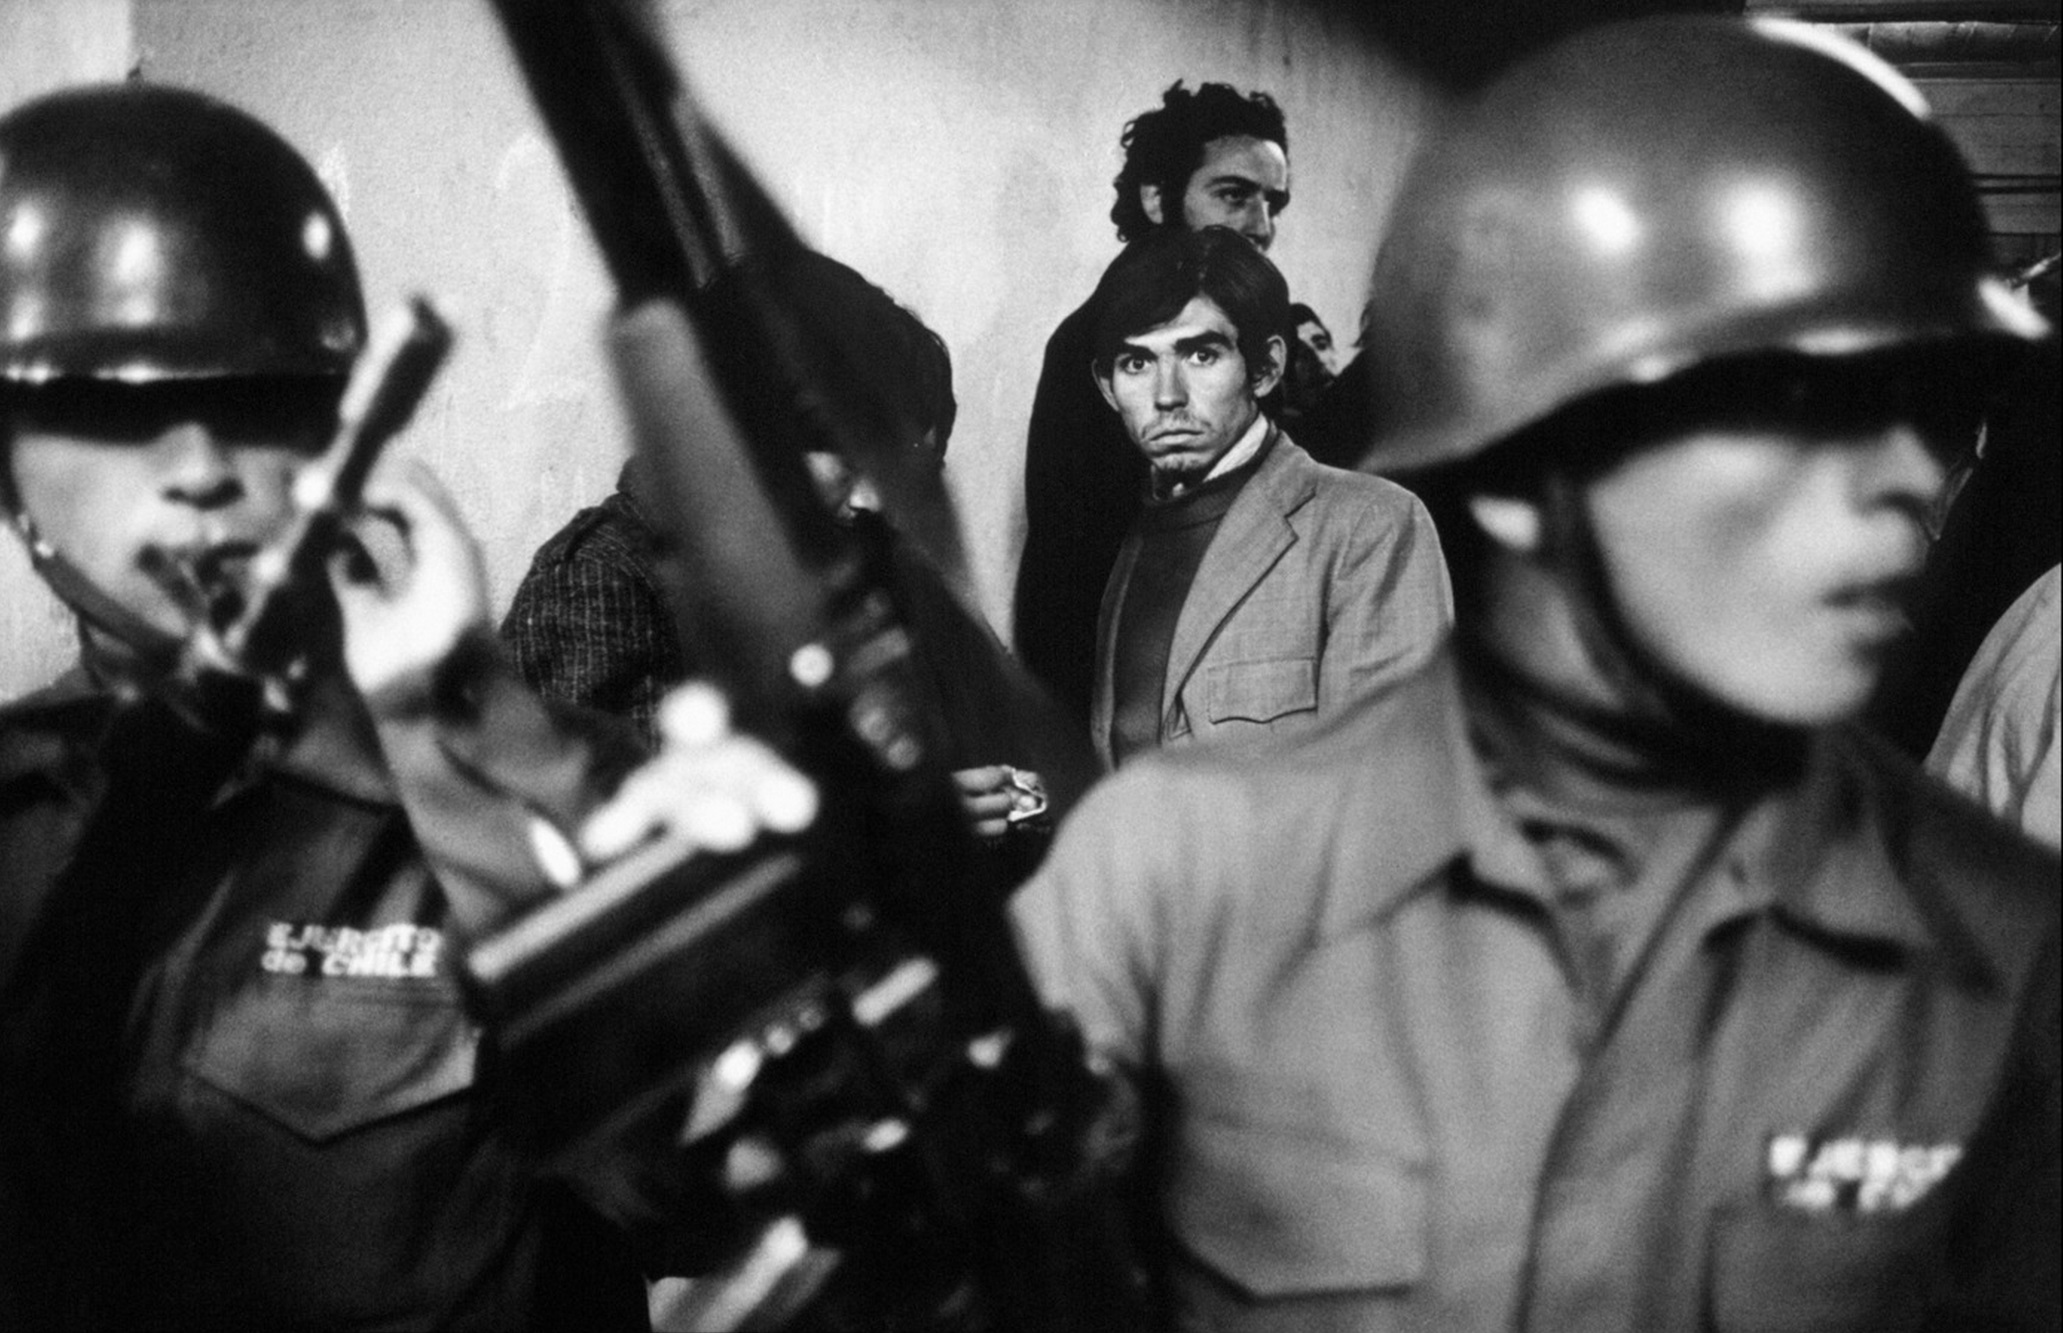 """Daniel Cespedes, a suspected """"leftist"""" is taken to the National Stadium after his arrest in the aftermath of the September 11th Chilean coup, Santiago, Chile, September 1973. © 2015 David Burnett/Contact Press Images"""